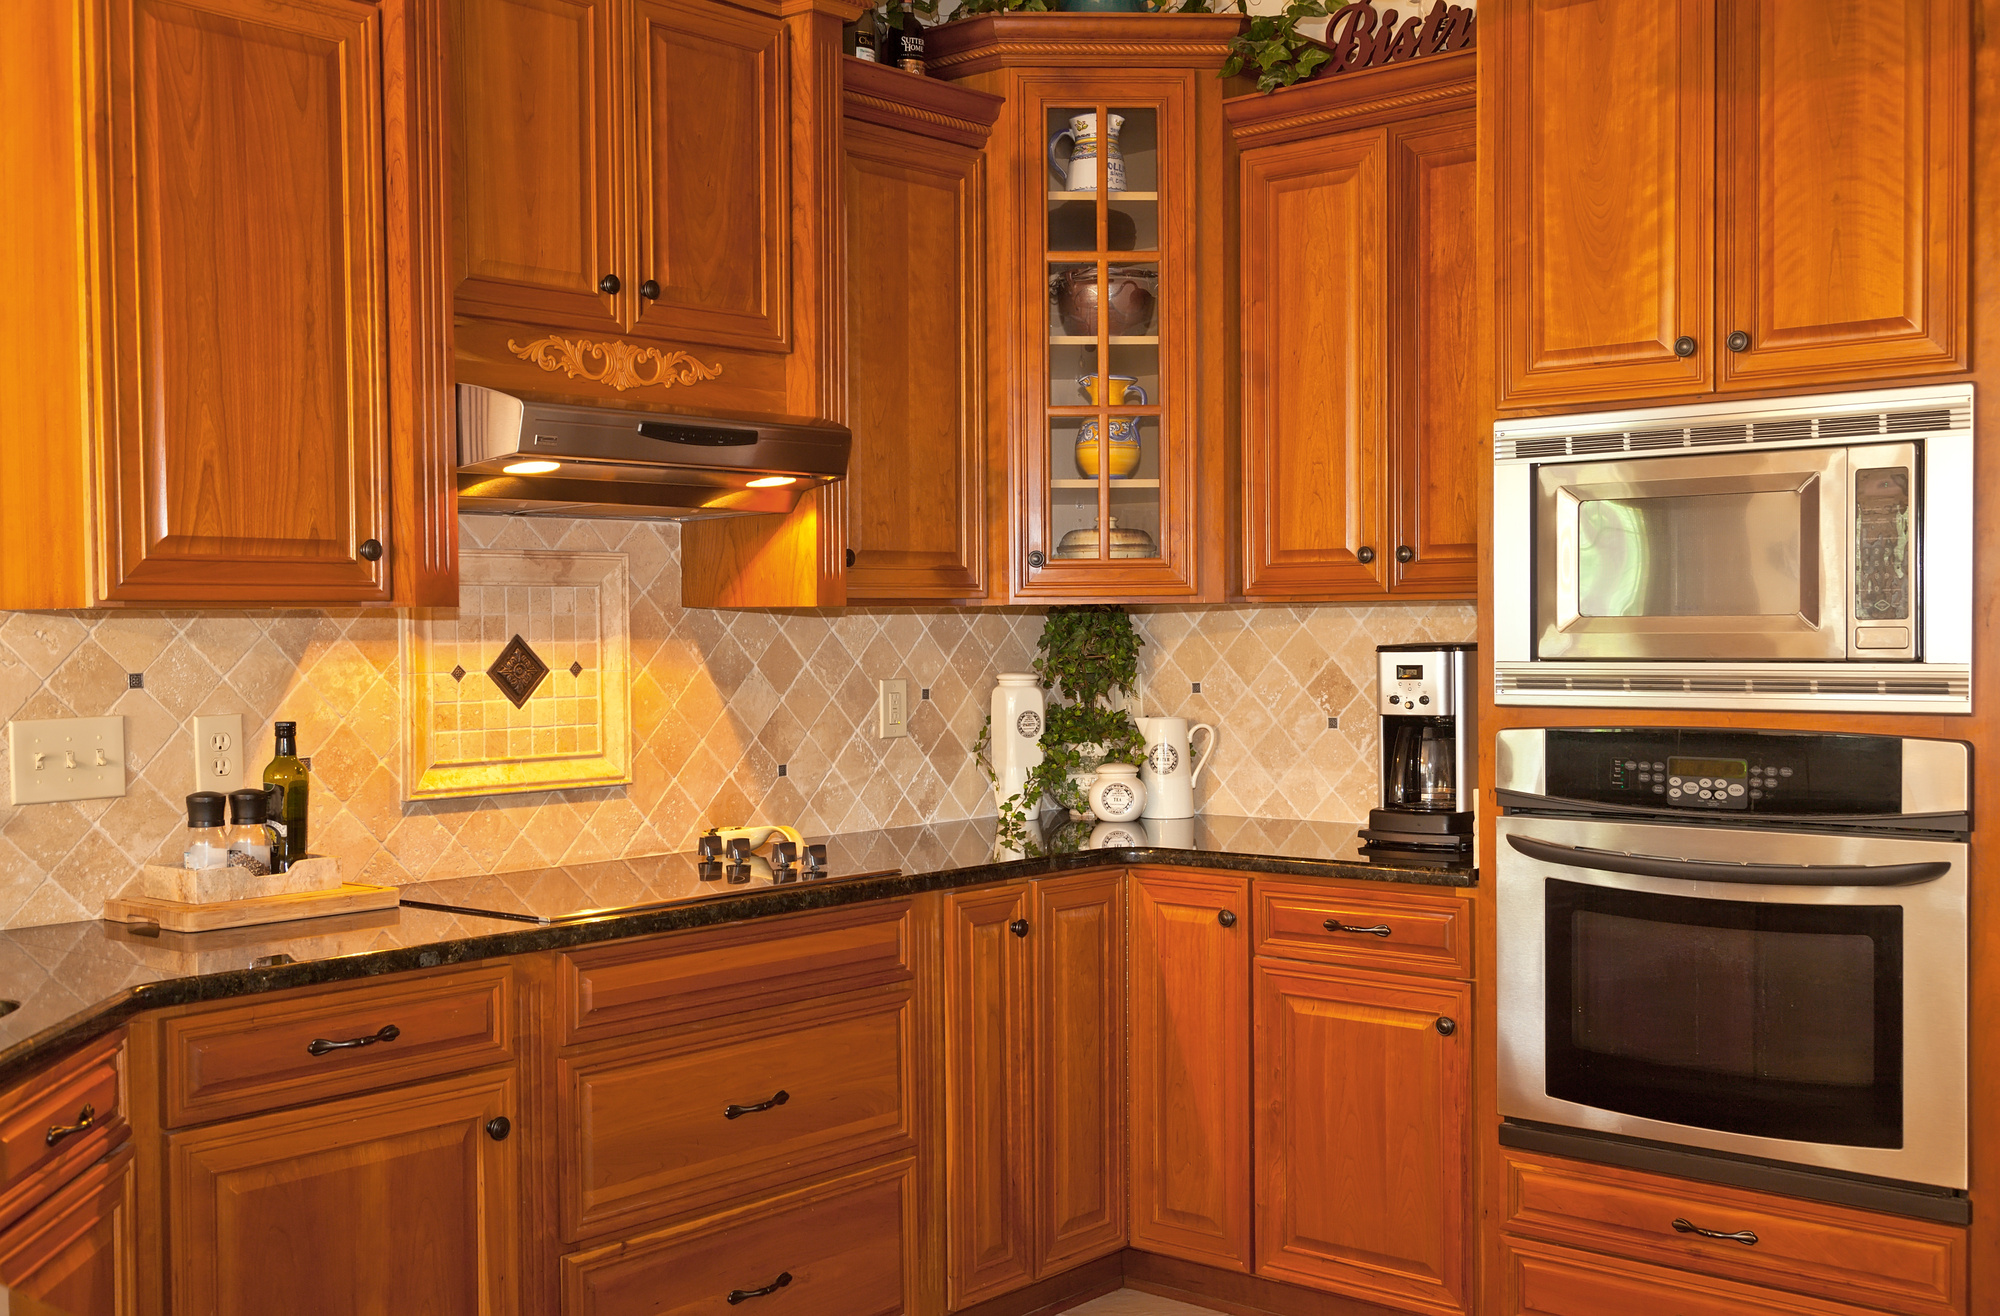 Kitchen Cabinets Specs Kitchen Cabinet Dimensions Your Guide To The Standard Sizes